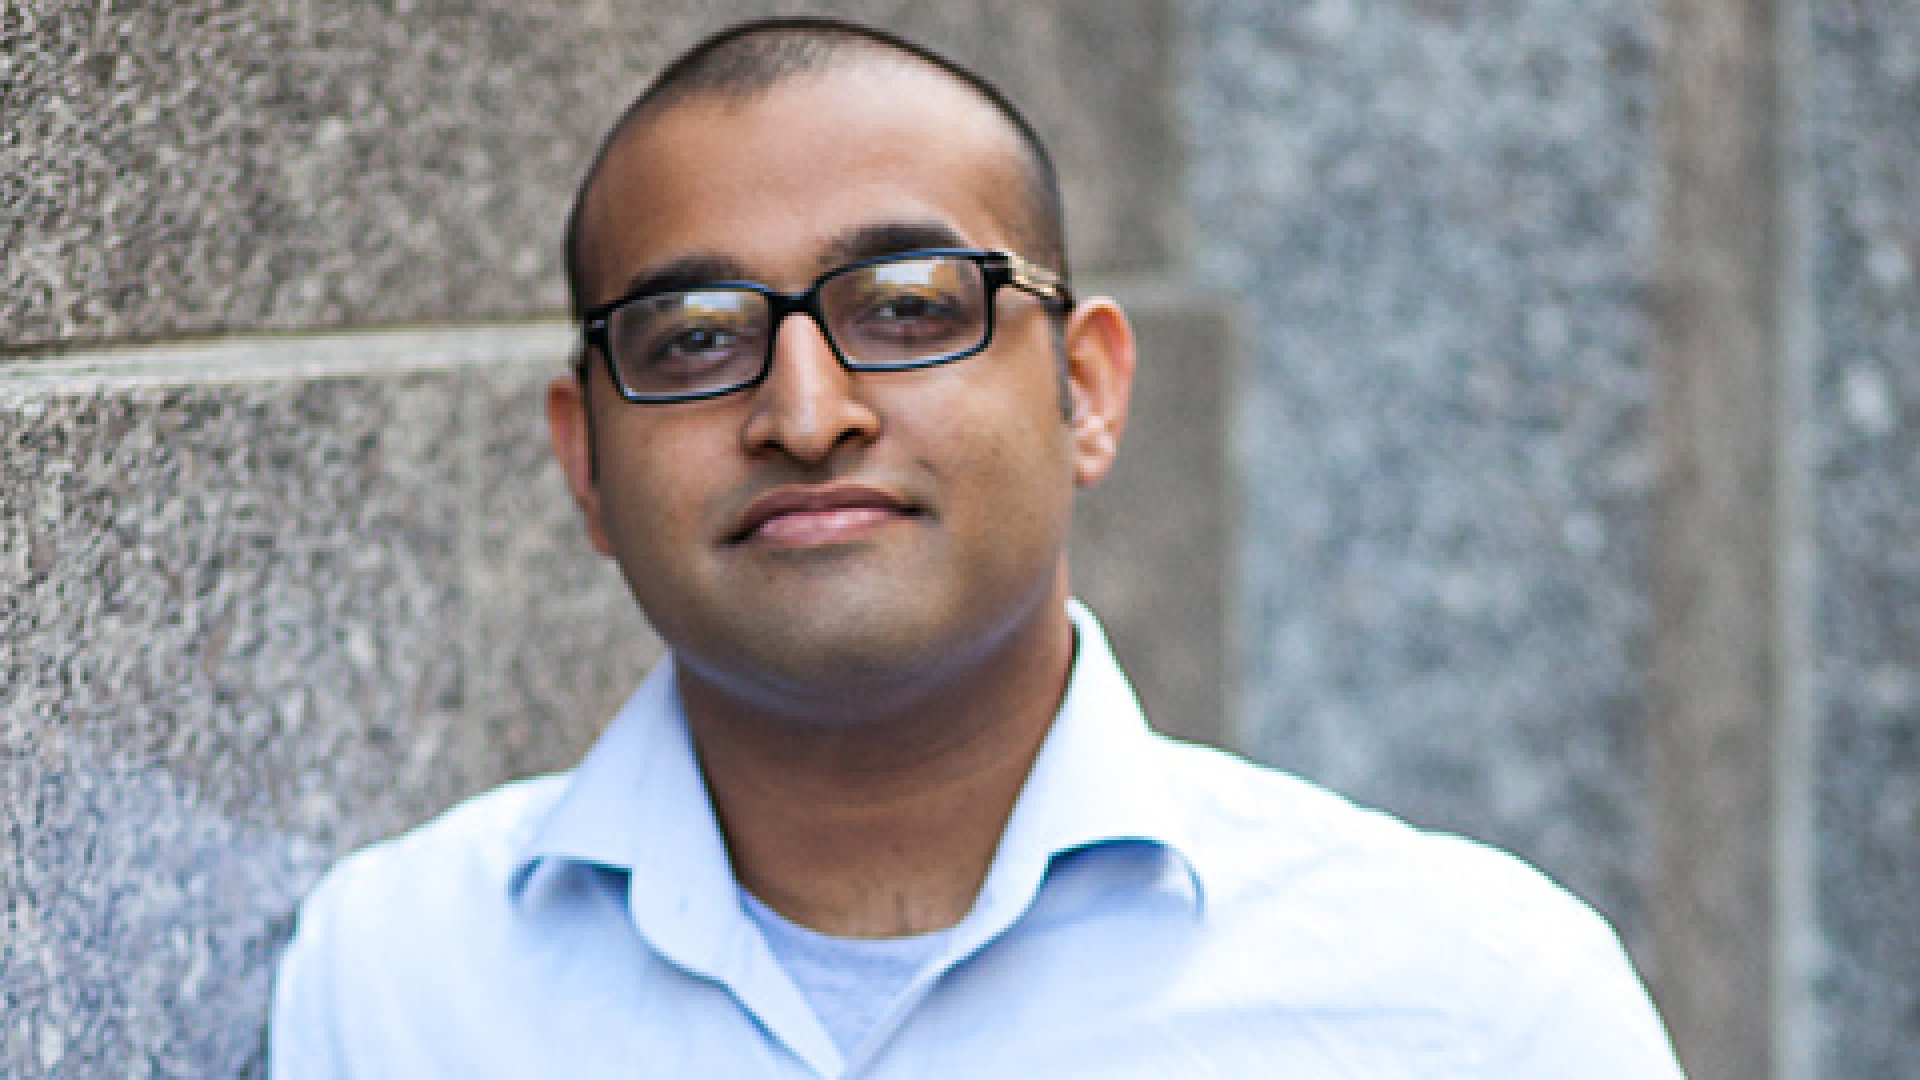 """""""The business school students looked at the market intelligence and told us that this was a bad idea...But we had a gut feeling telling us that it was worth pursuing. So, we did. And I think I got a C-minus in the class."""" —Nikhil Sethi, Adaptly"""